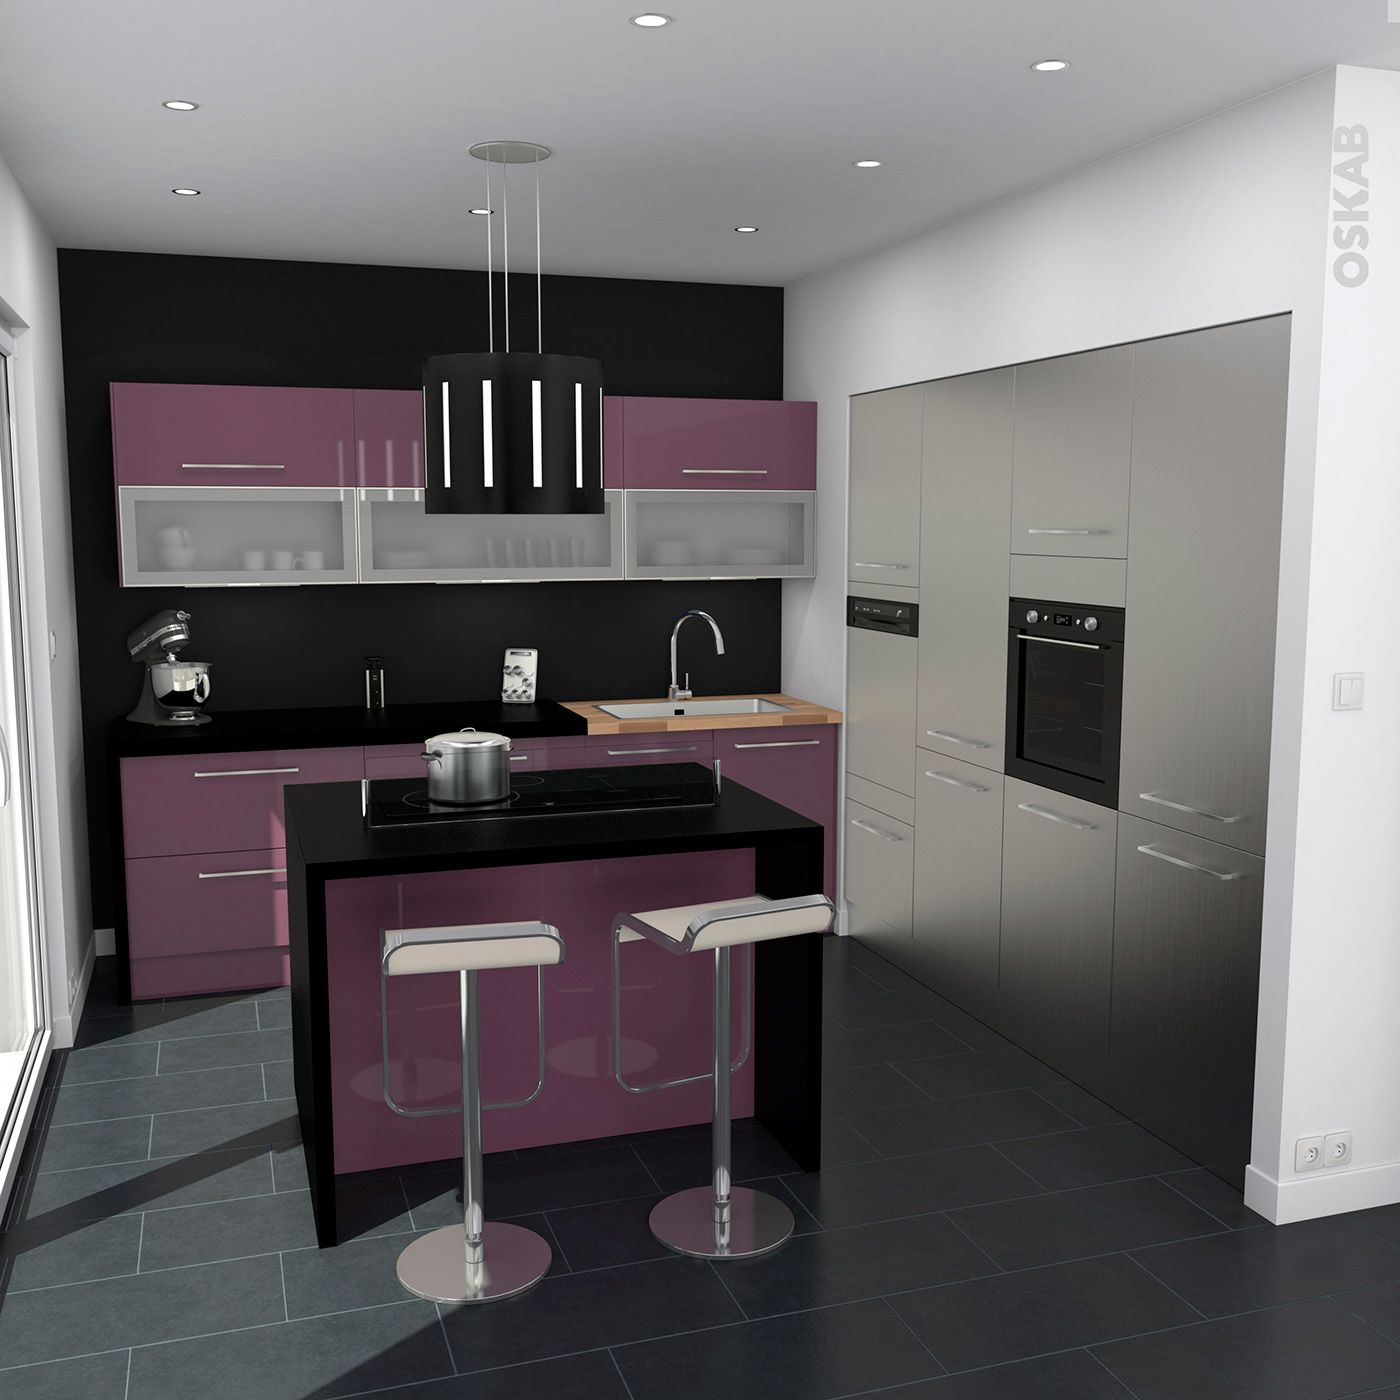 Cuisine aubergine mod le keria aubergine brillant for Modeles cuisines integrees